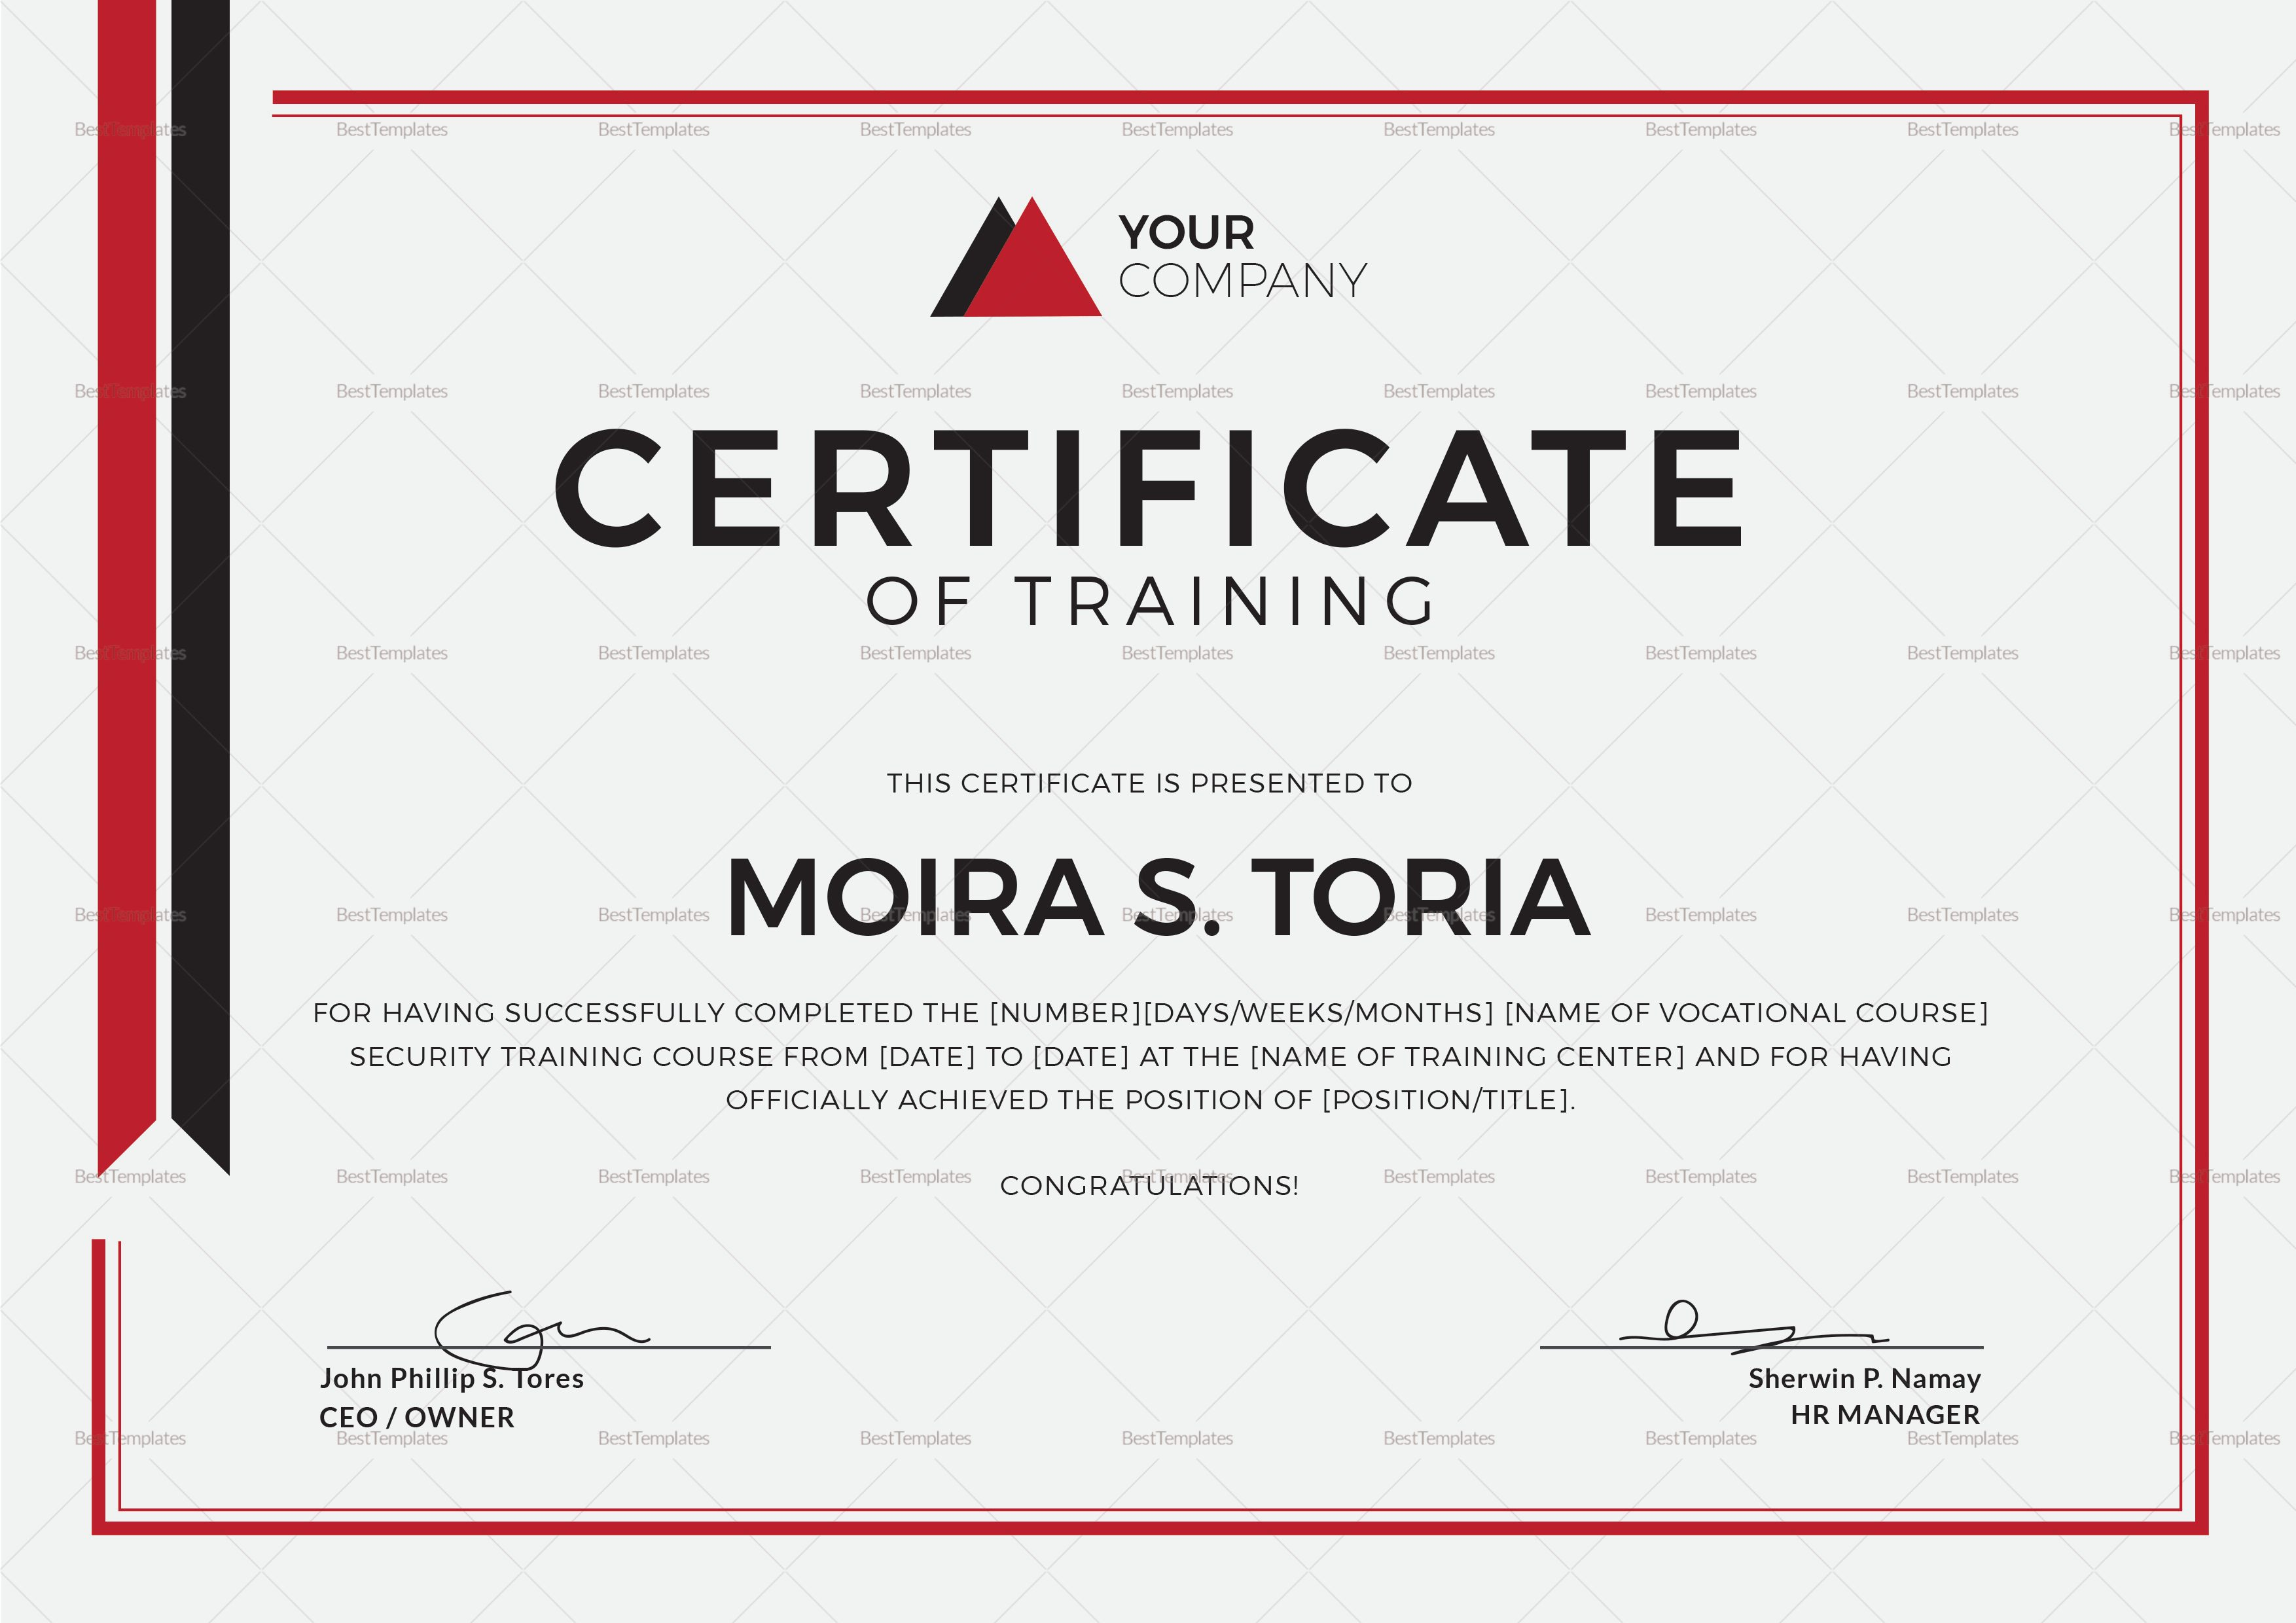 Security Training Certificate Design Template In Psd Word Inside Certificate Templates